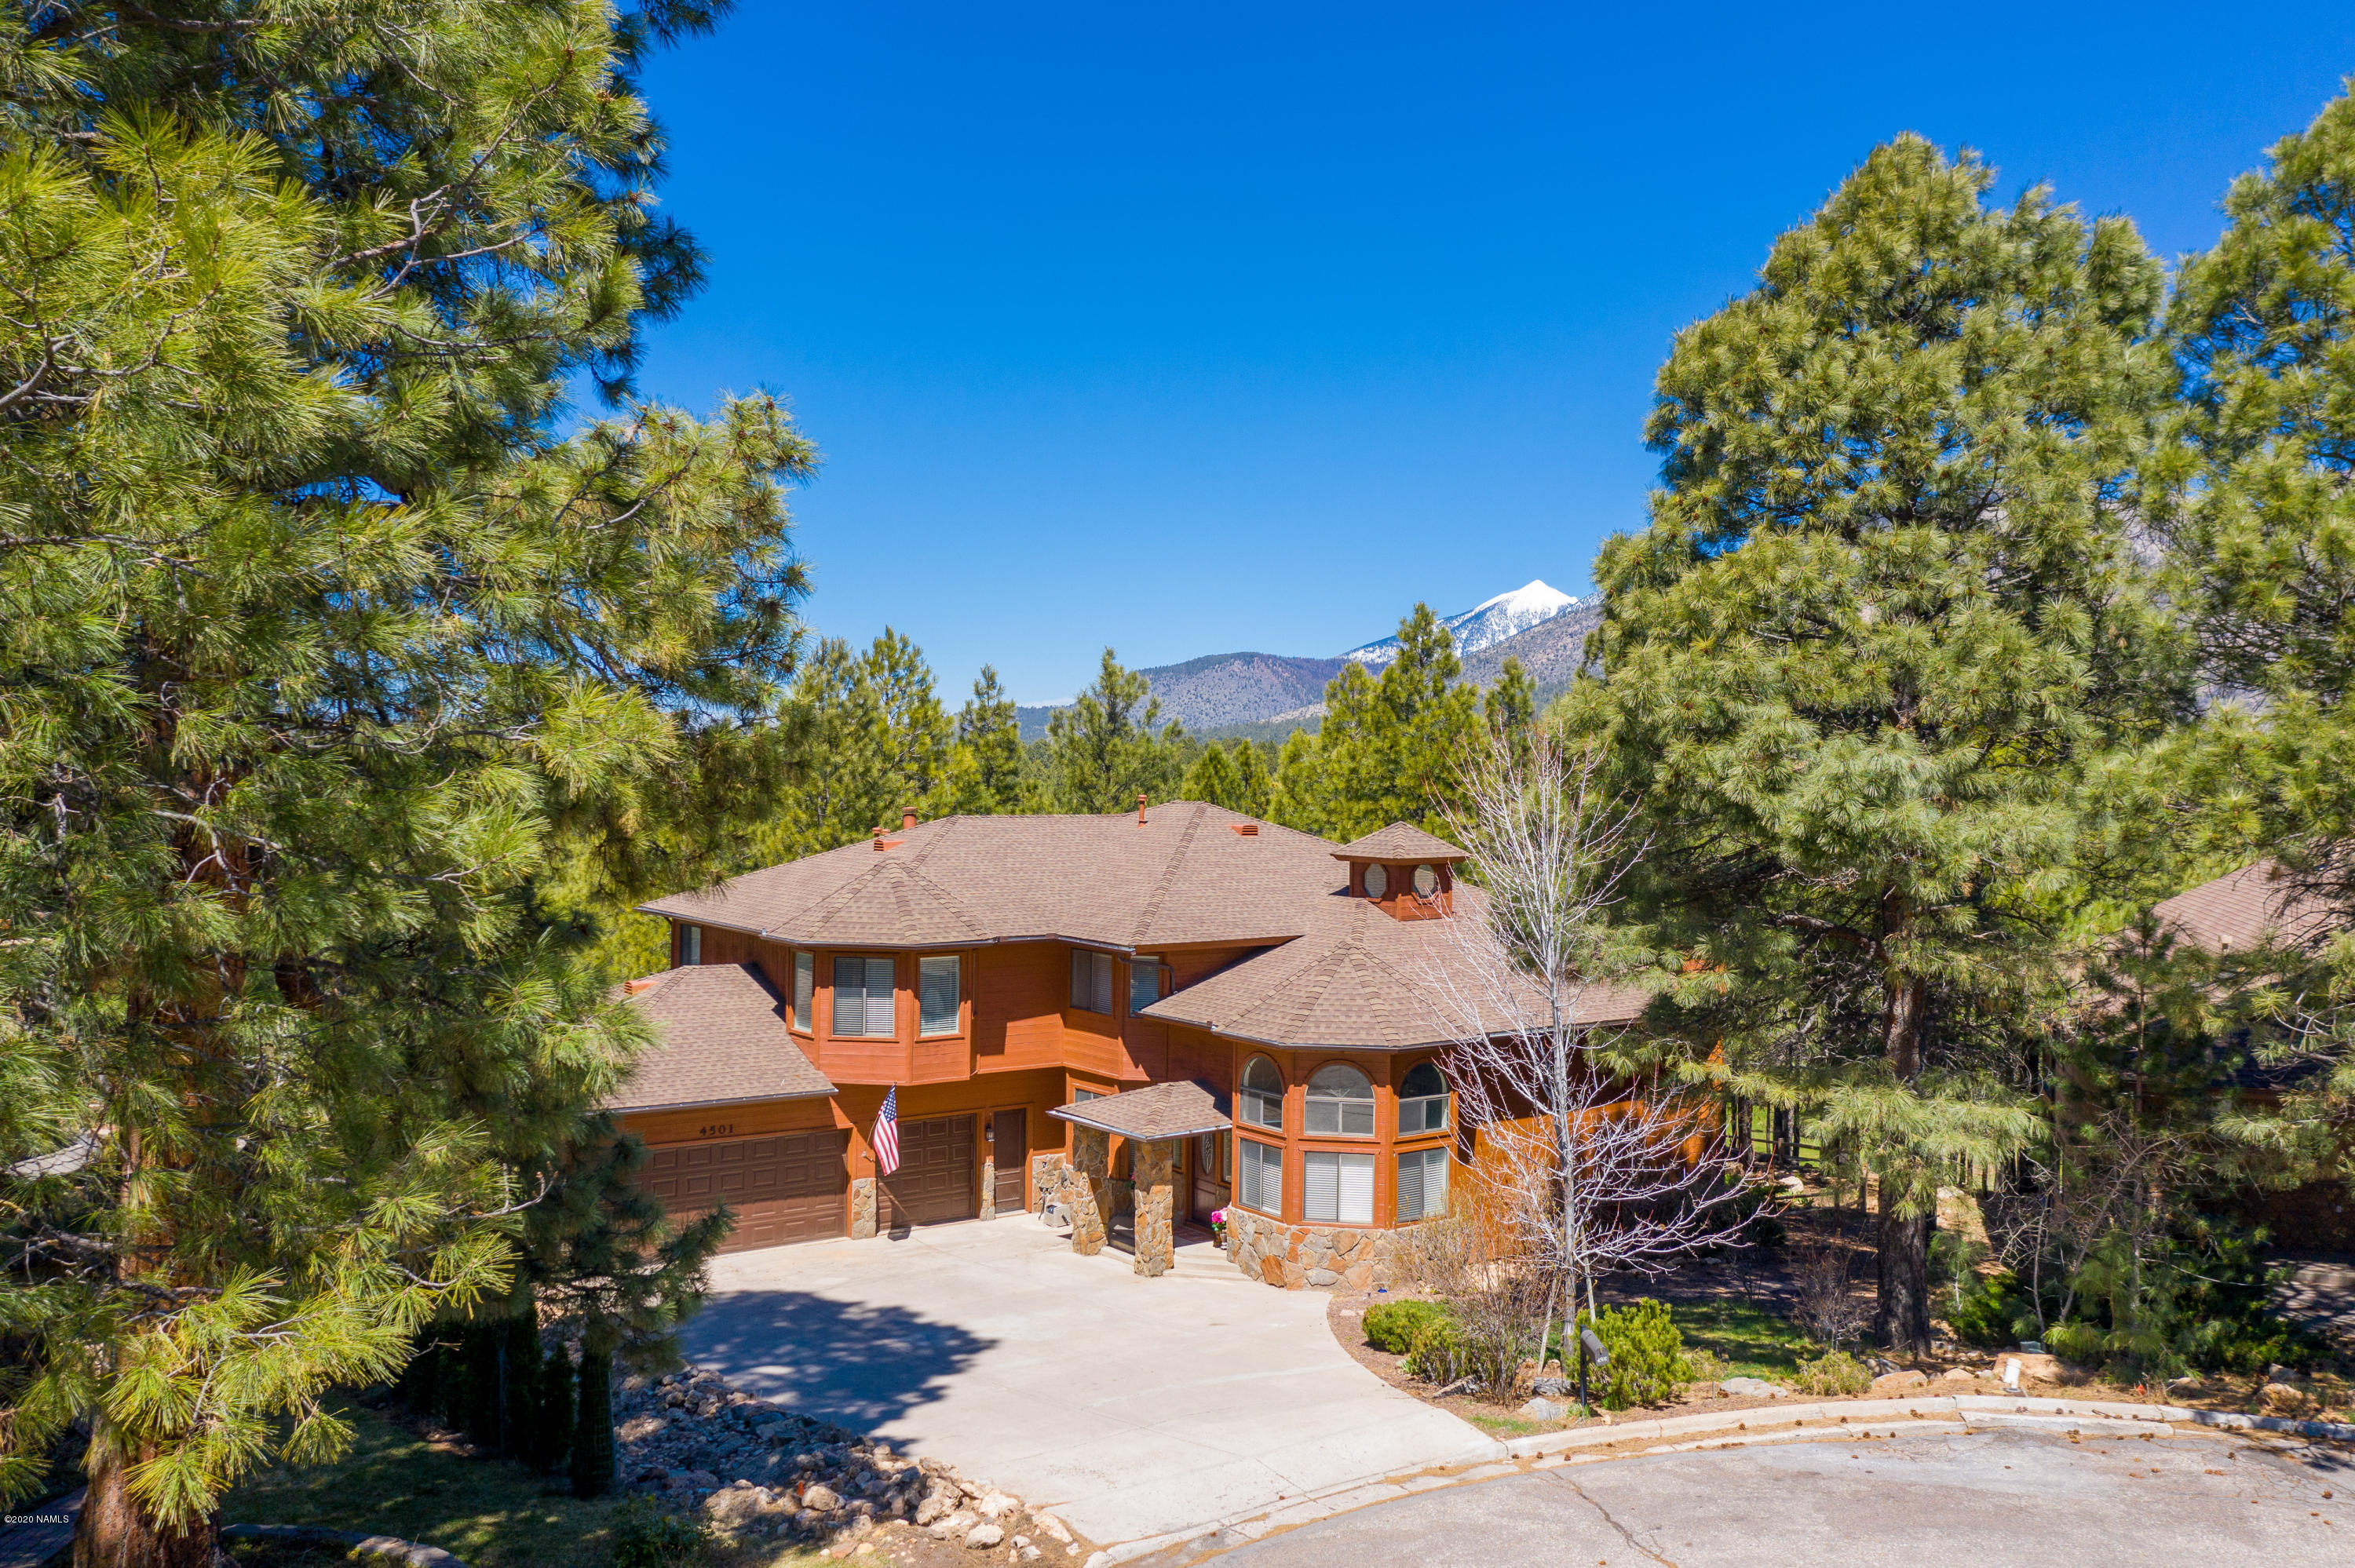 Photo of 4501 N Doral Way, Flagstaff, AZ 86004